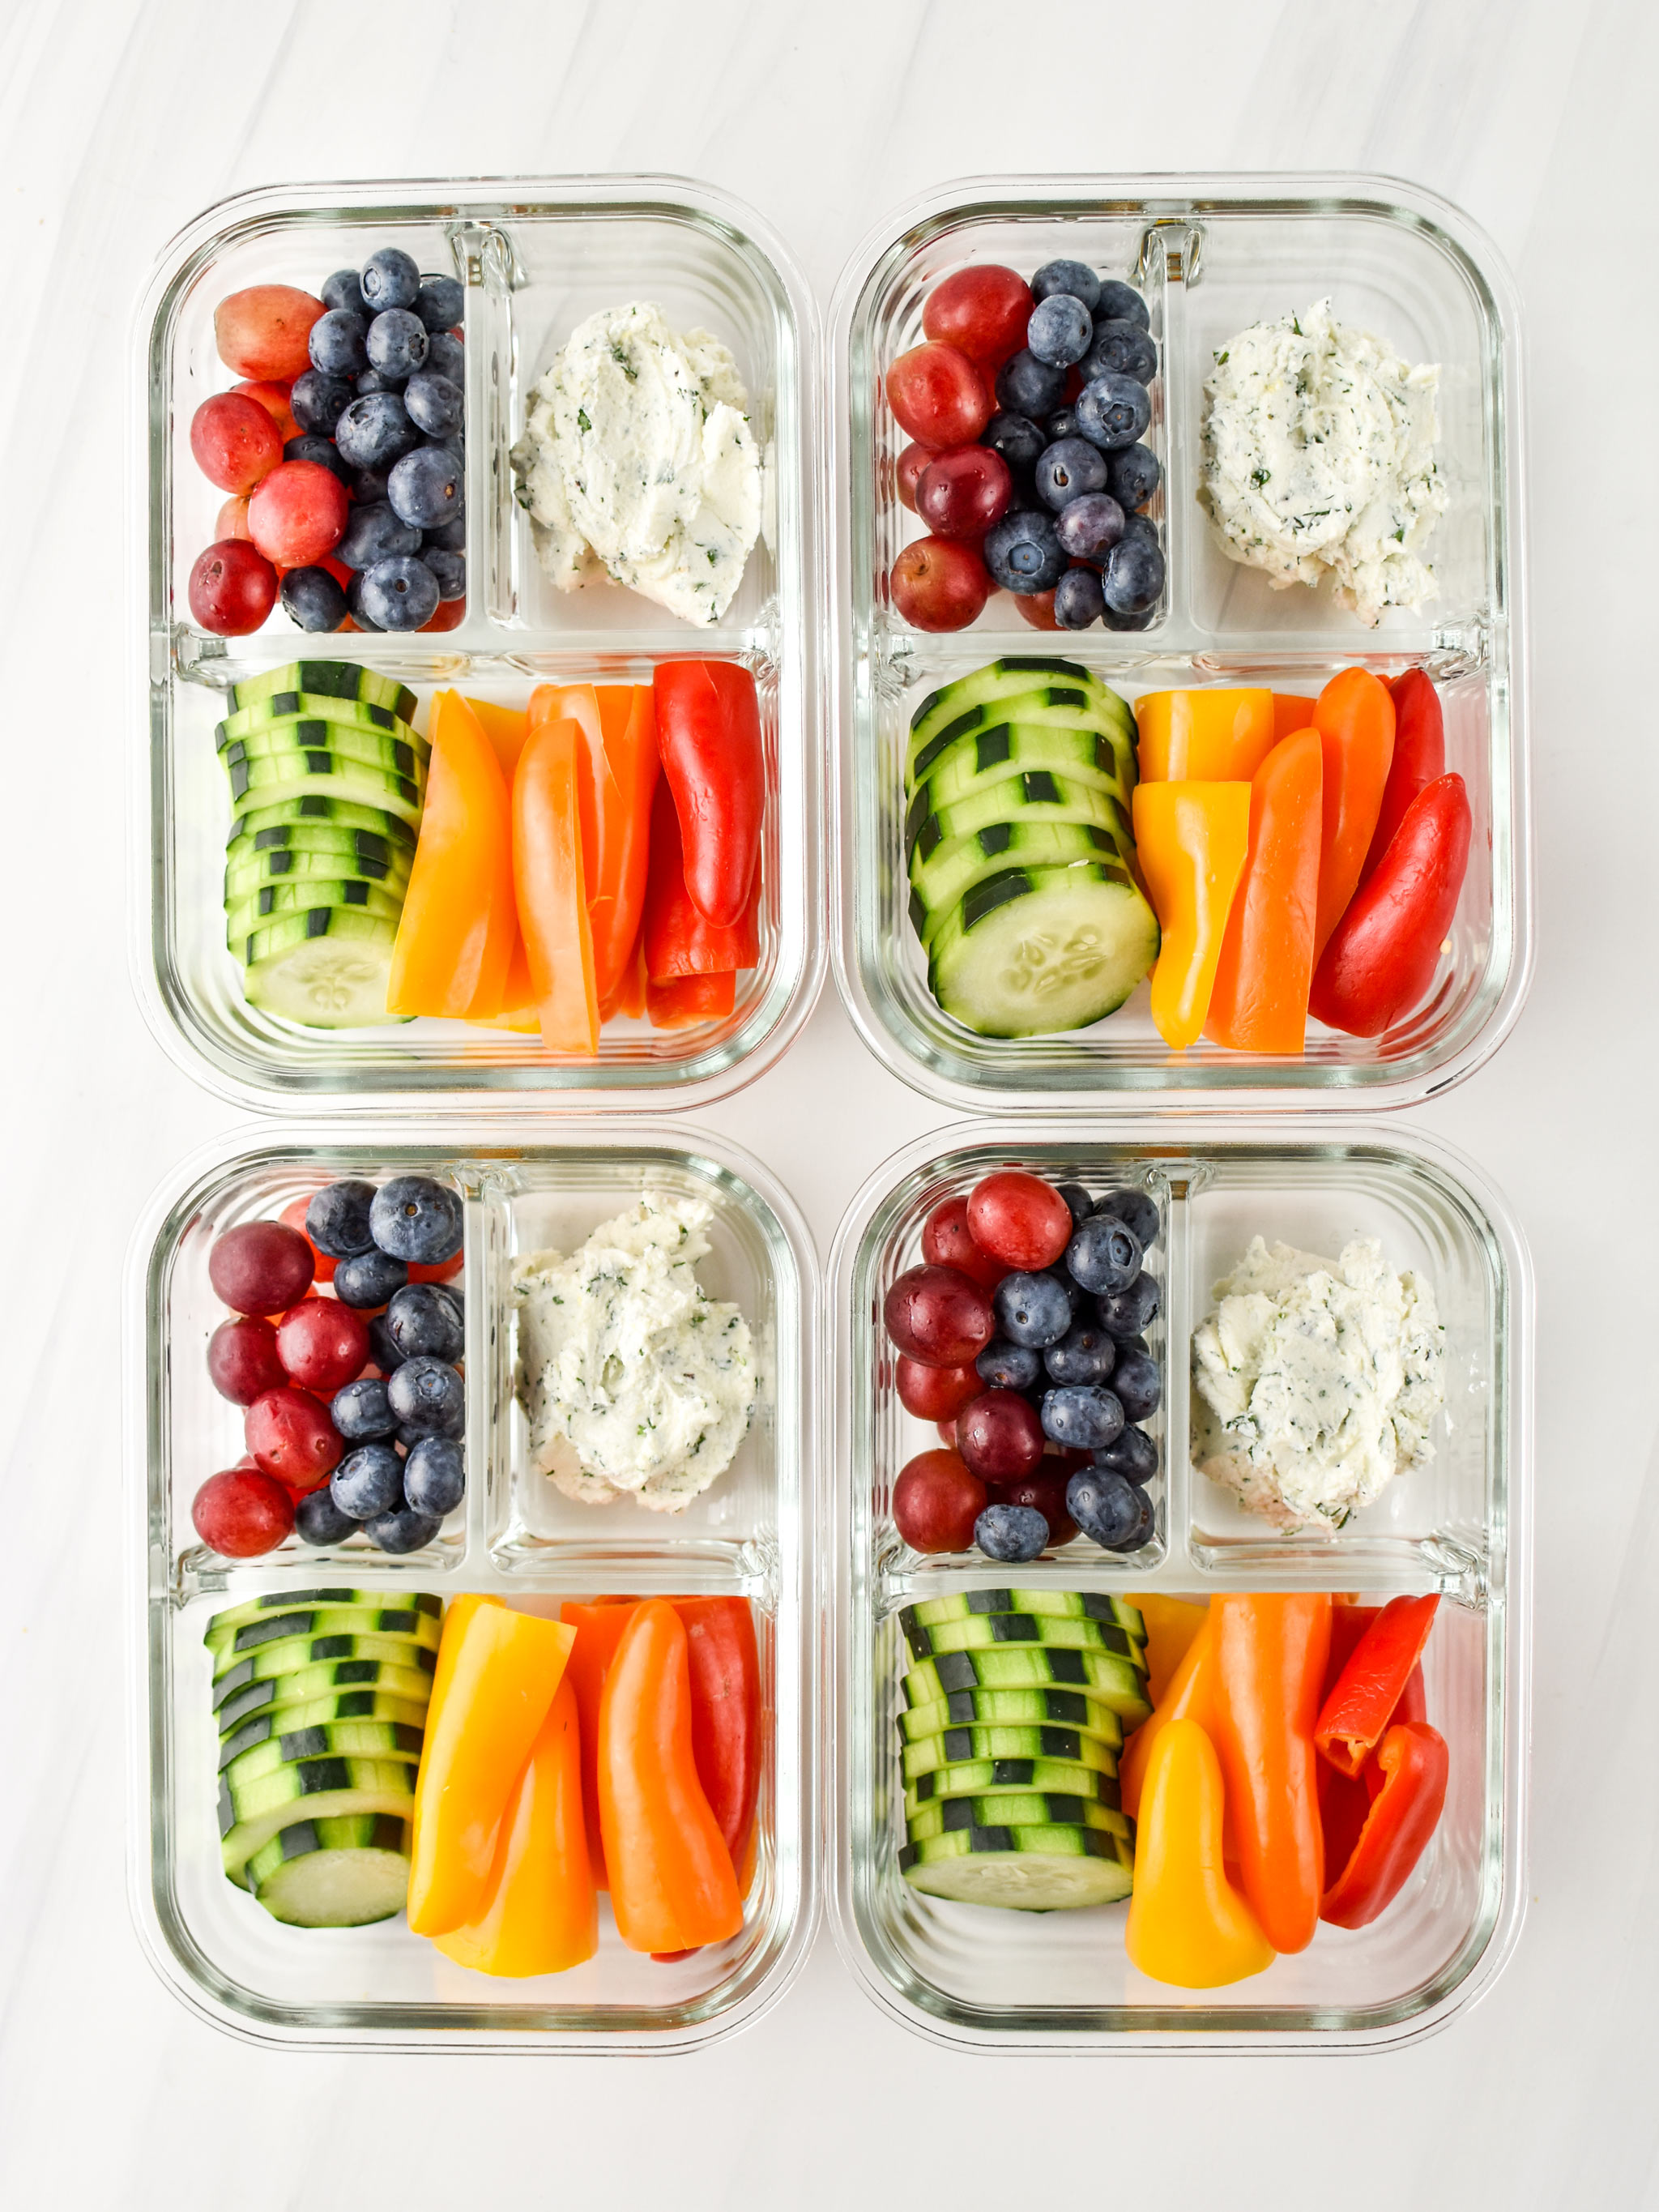 Herbed Goat Cheese Rainbow Snack Boxes in four meal prep containers pictured from above.